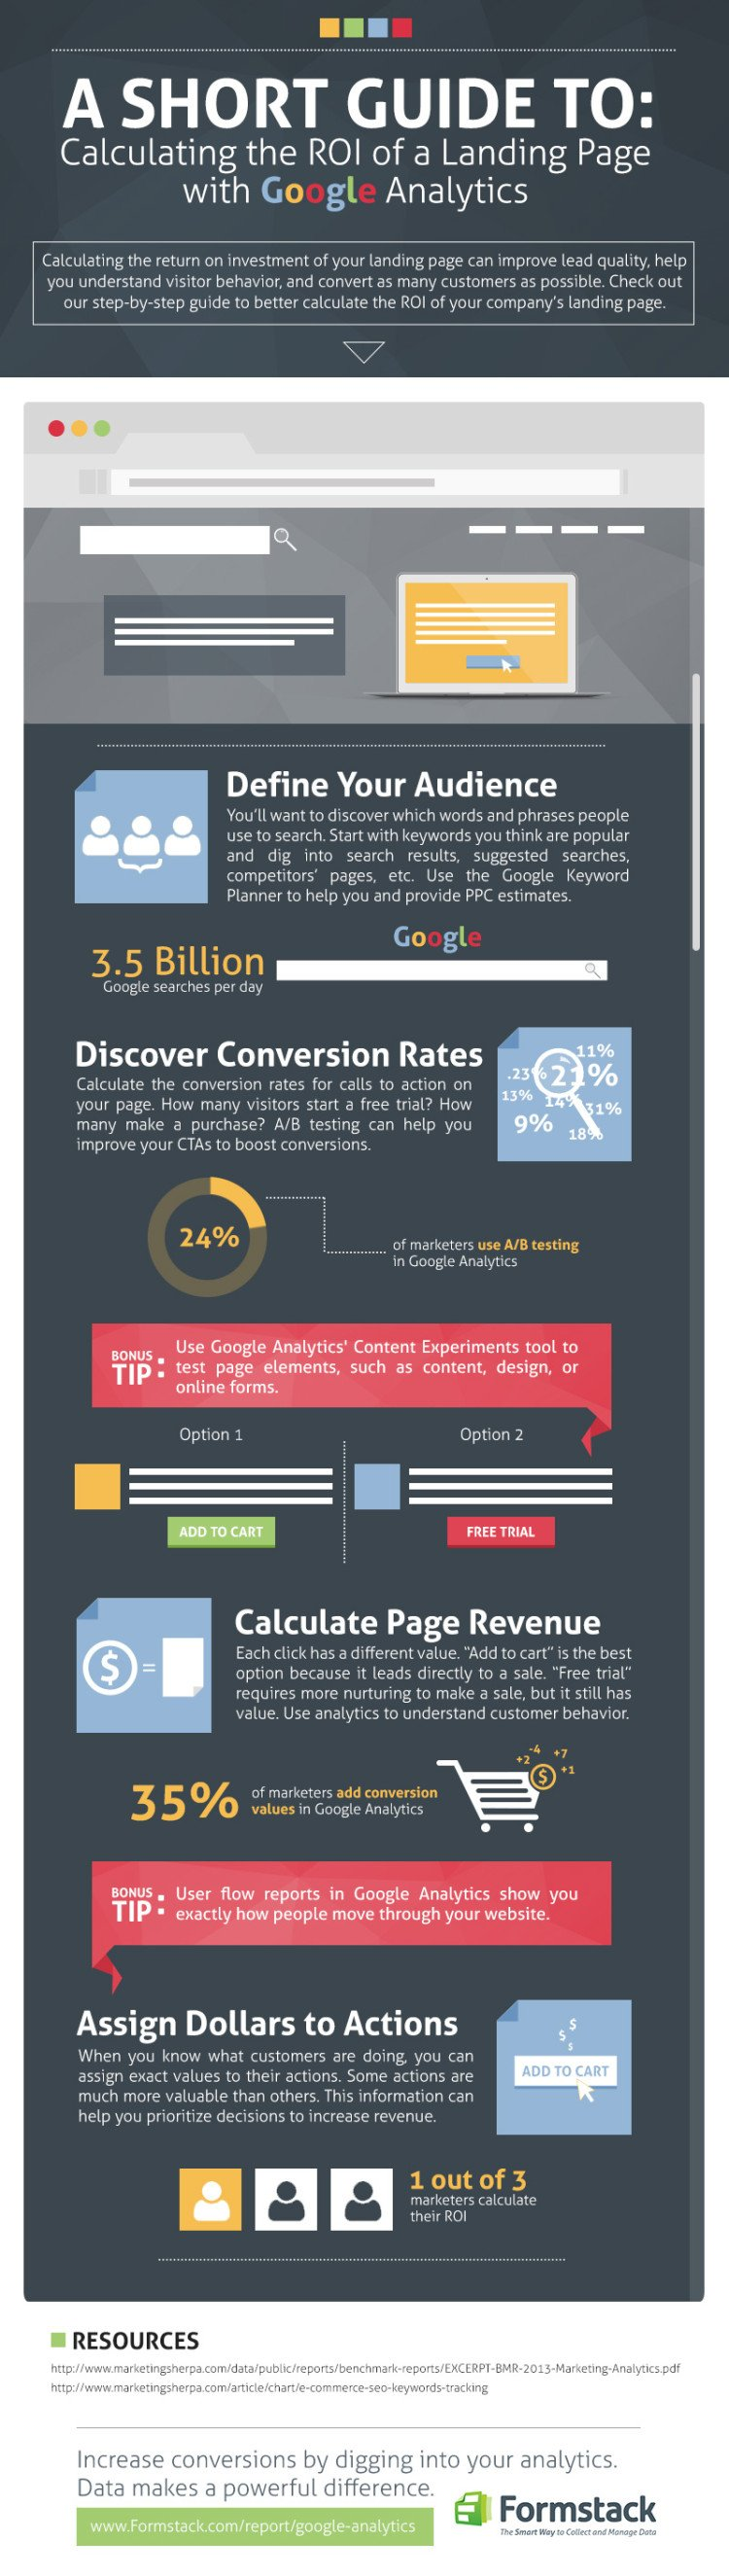 A Short Guide To Calculating the ROI of a Landing Page with Google Analytics [Infographic]